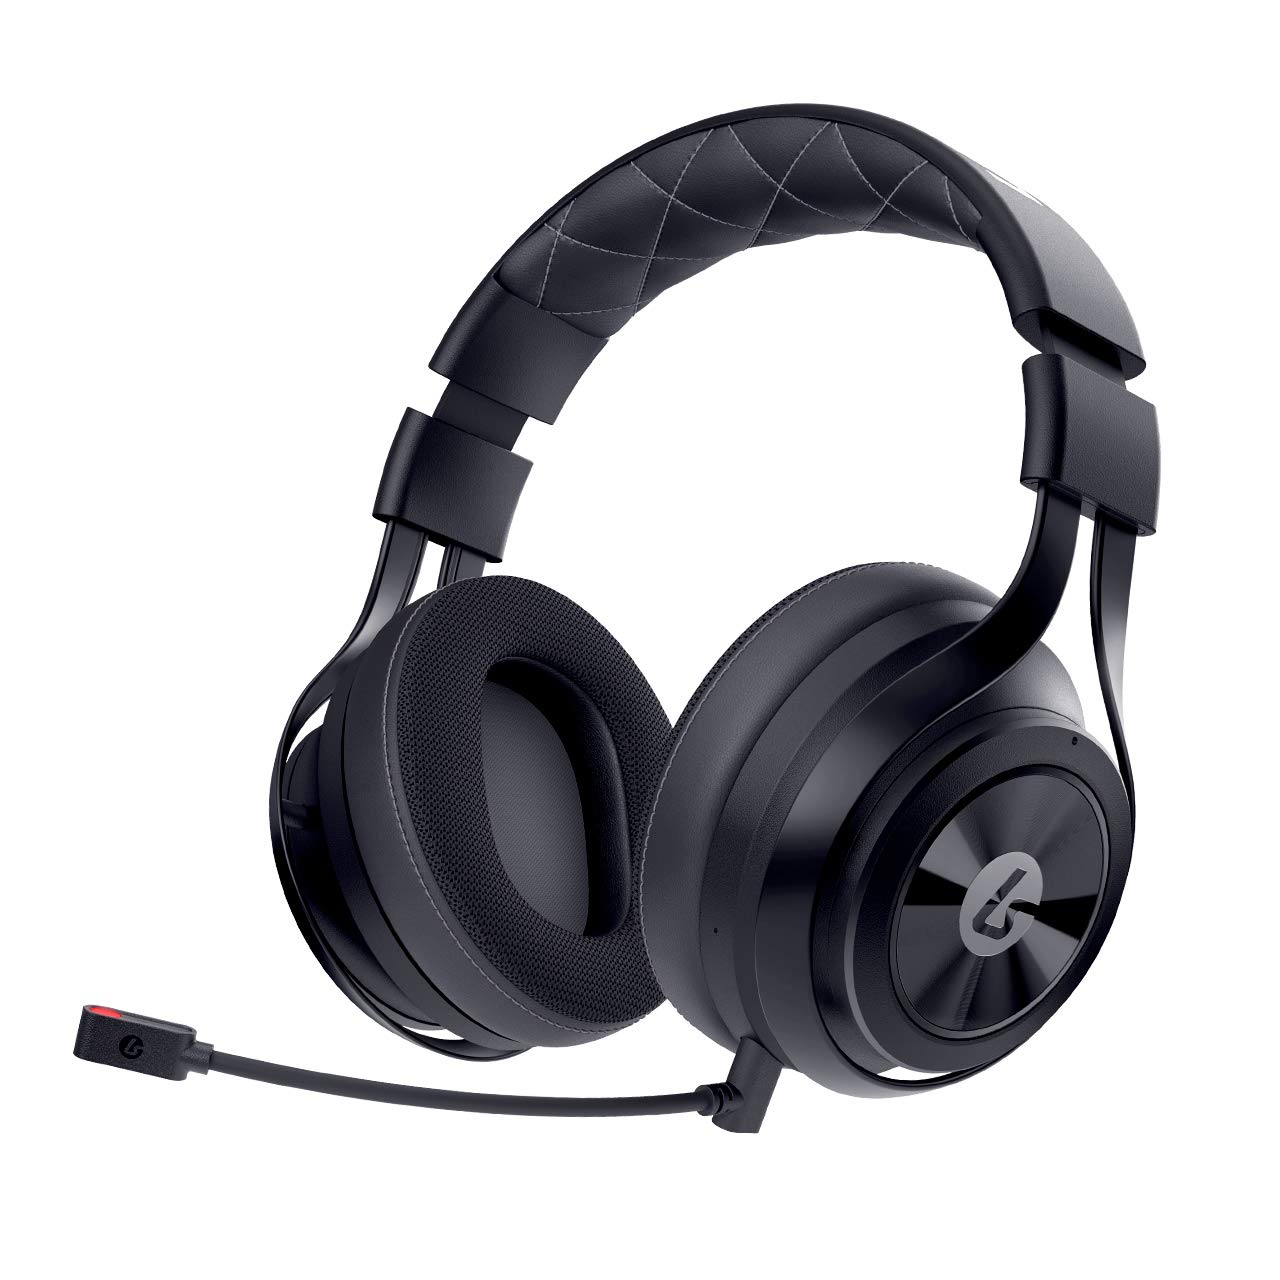 01d8fdd2719 LucidSound LS35X Wireless Surround Sound Gaming Headset - Officially  Licensed for Xbox One - Works Wired with PS4, PC, Nintendo Switch, Mac, iOS  and Android